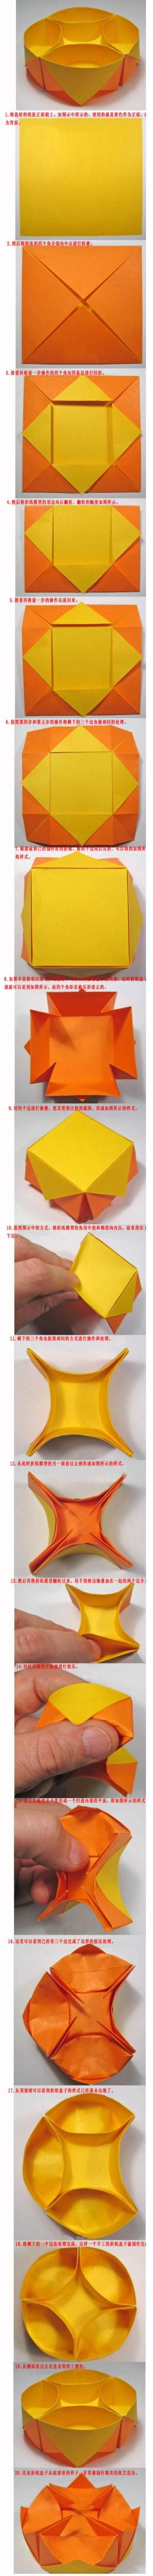 9 Best Origami Images On Pinterest Boxing Gift Boxes And Paper How To Fold An Naboo Starfighter Other Starships From Star This Is Really Cool But Its In A Different Language